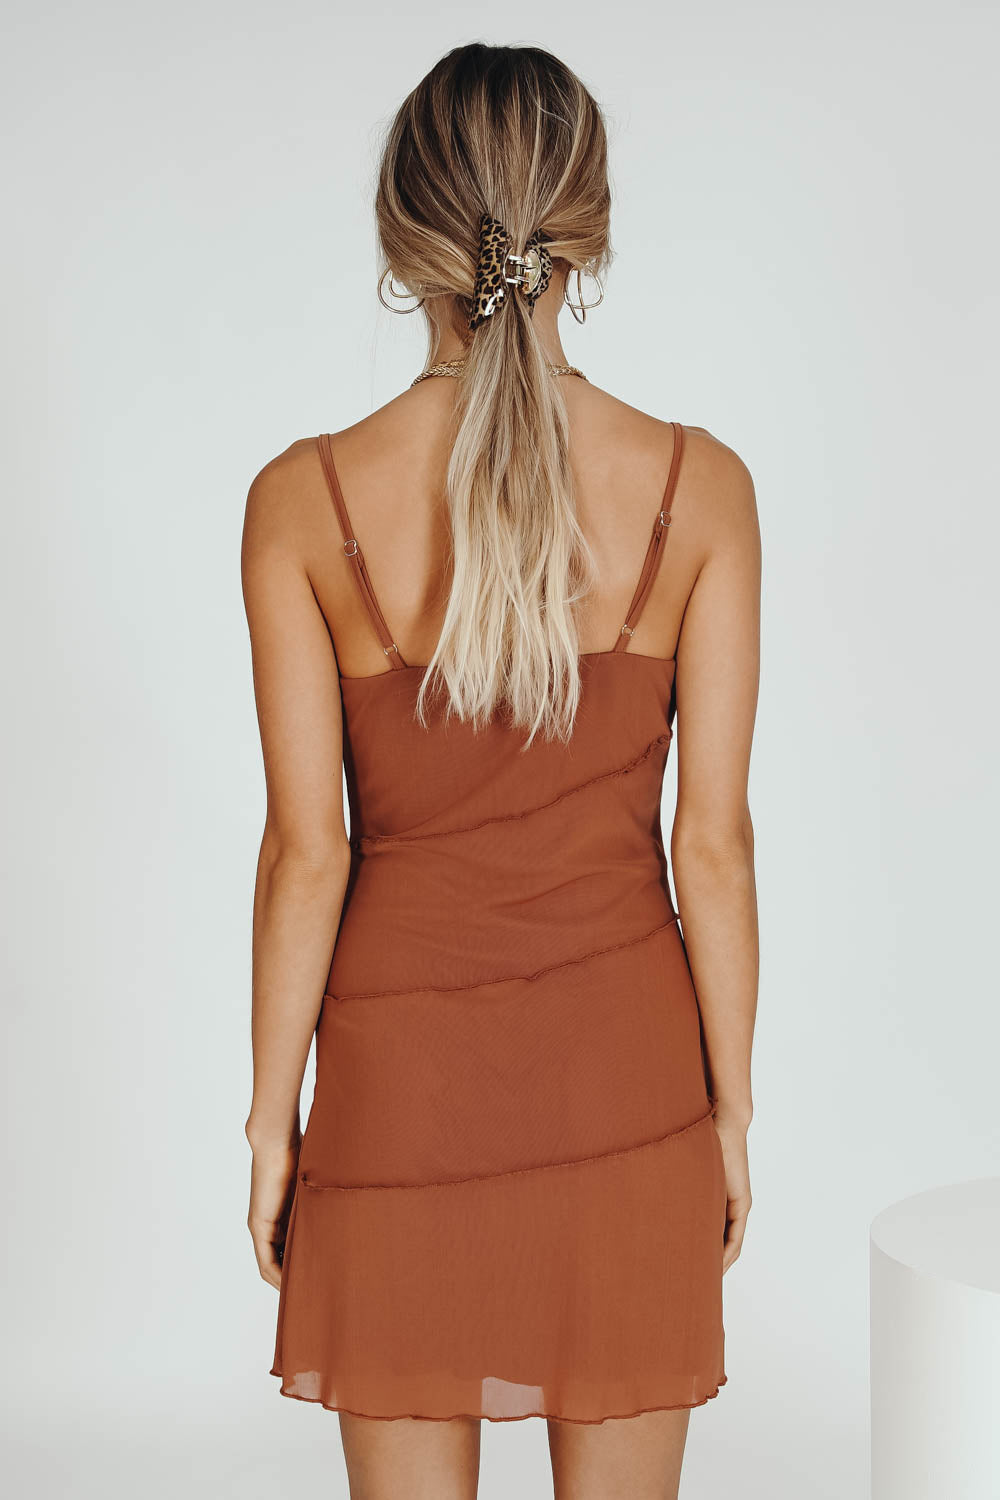 Caught Up With Her Mesh Mini Dress // Tan